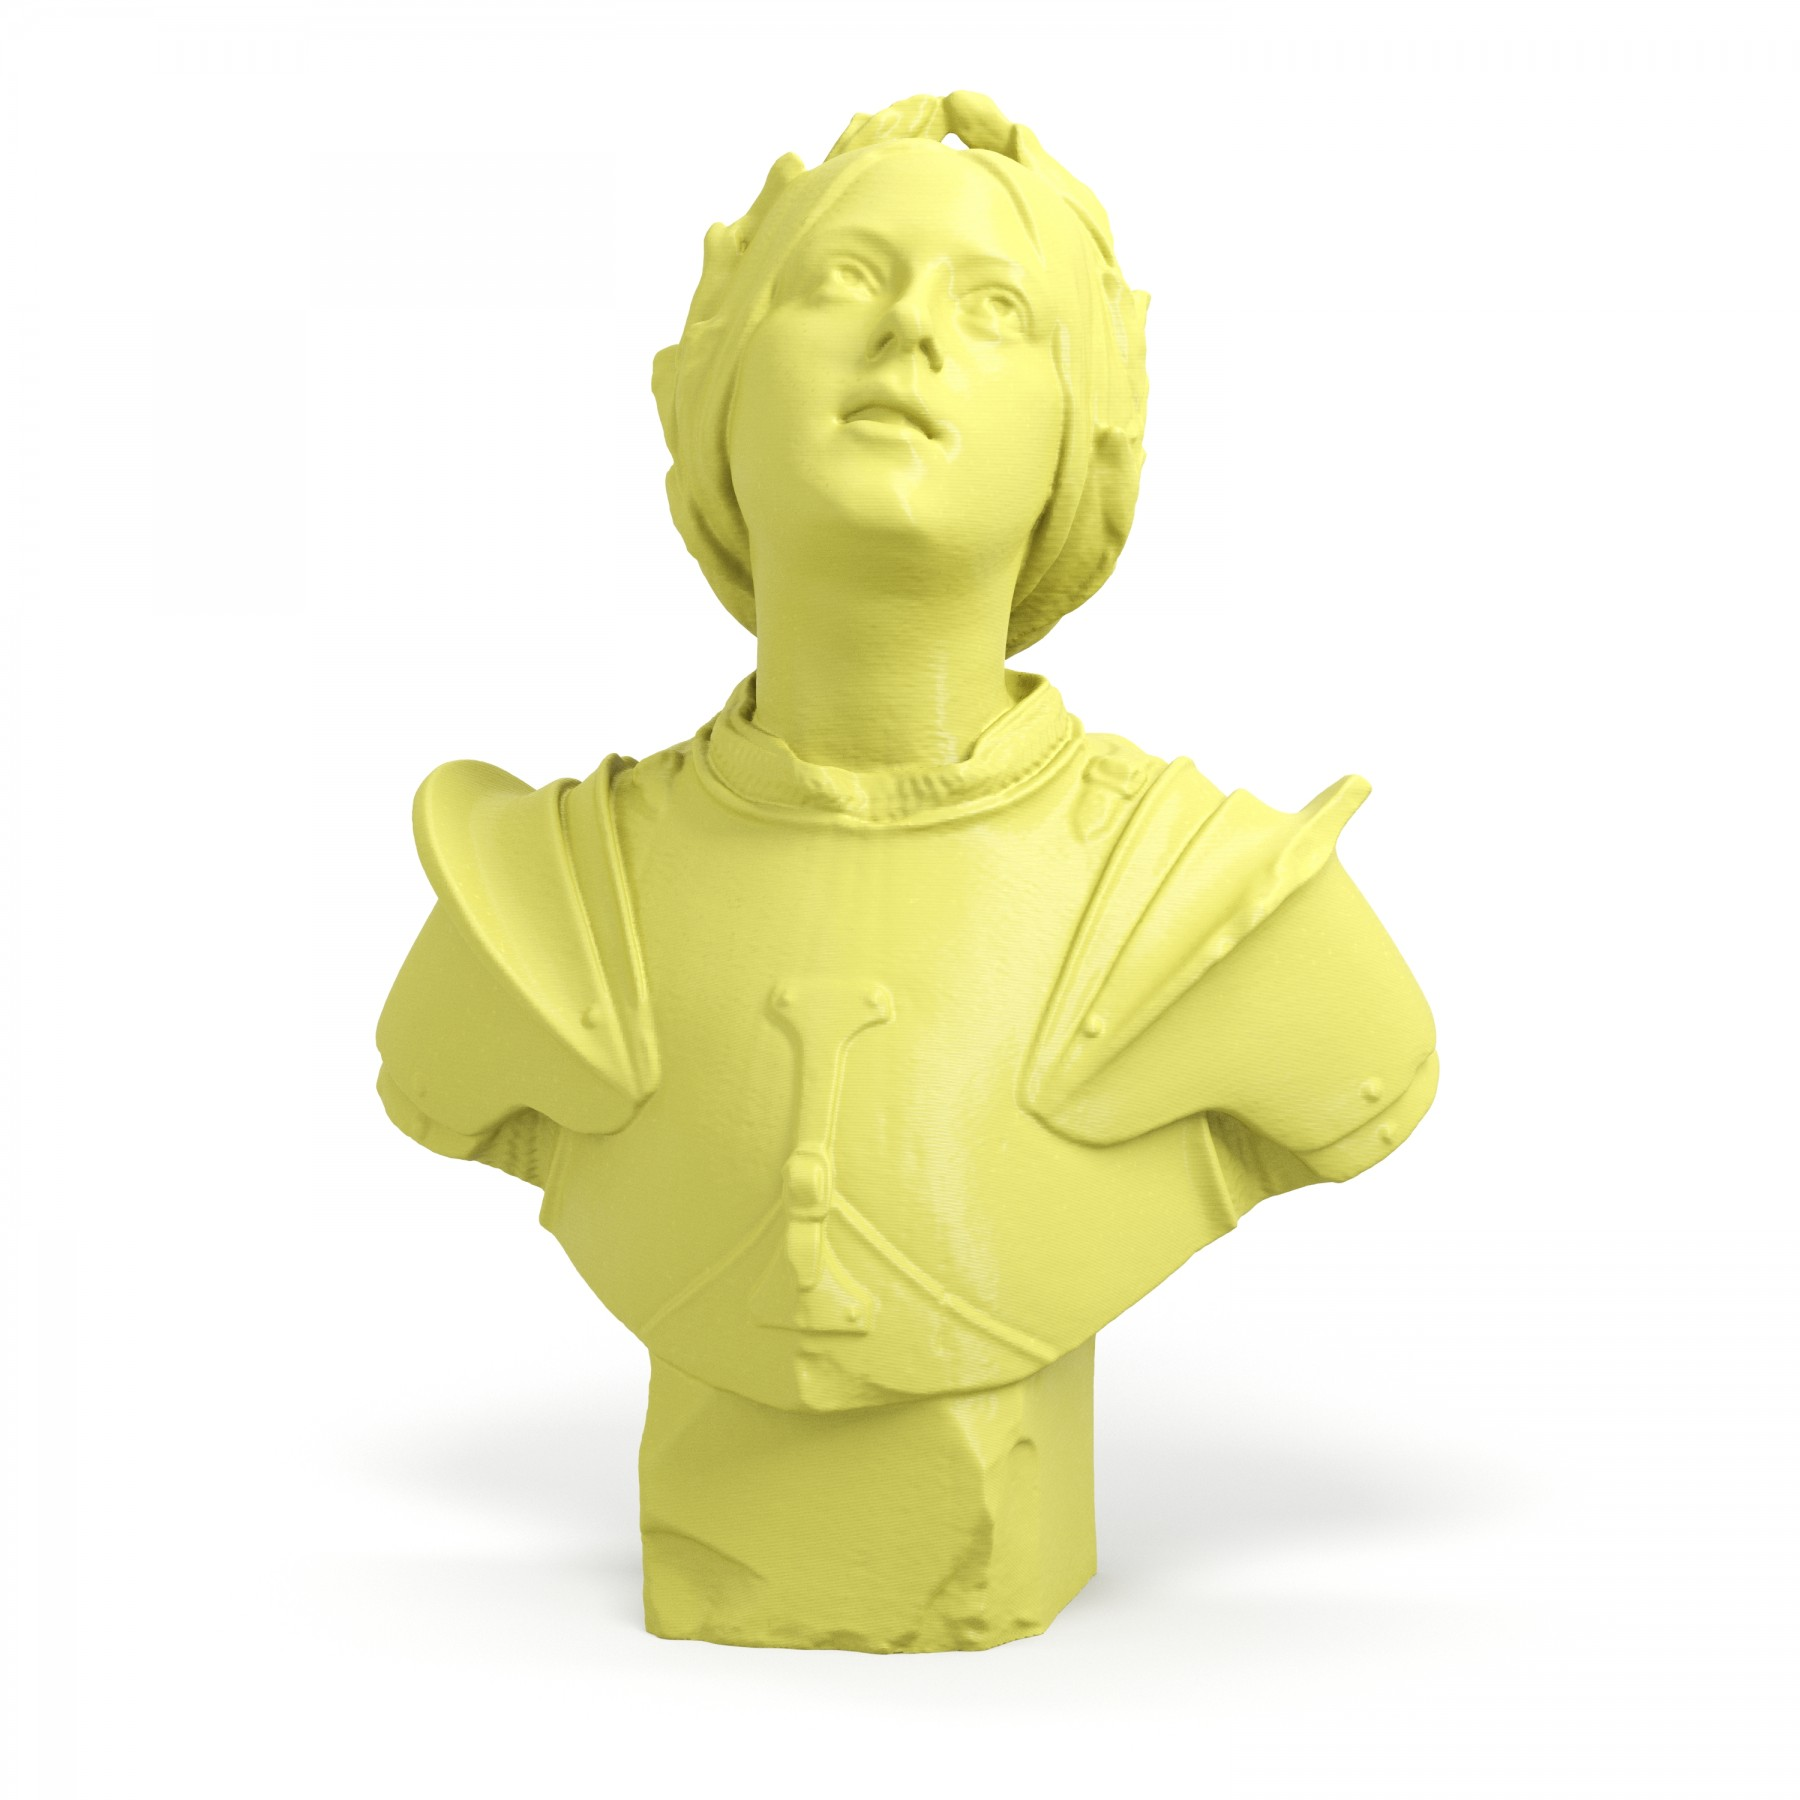 3D Printed Joan of Arc Busts Art Clone Statue - ARTFICIAL.COM